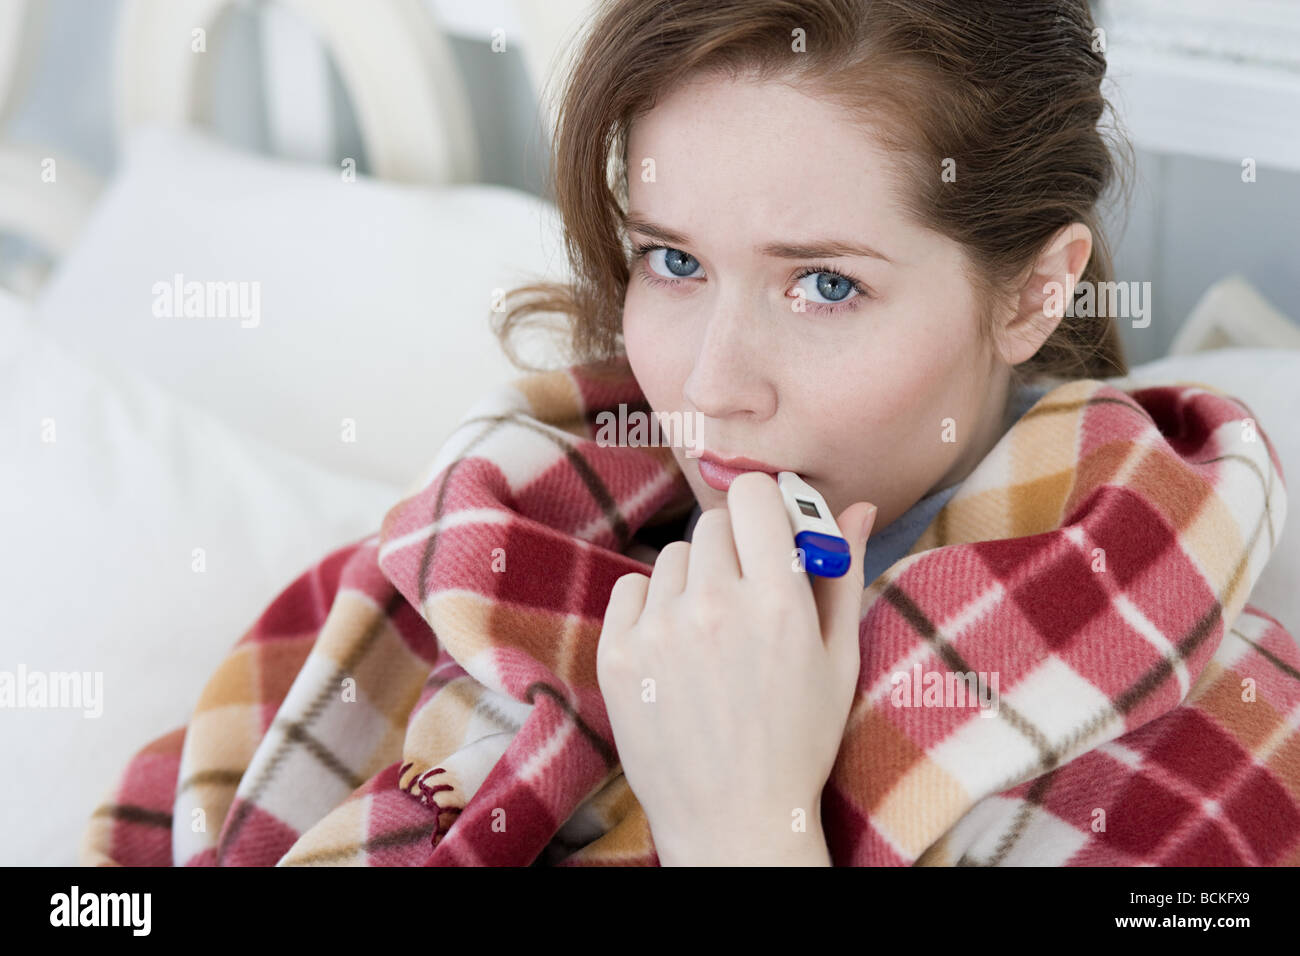 Ill young woman - Stock Image